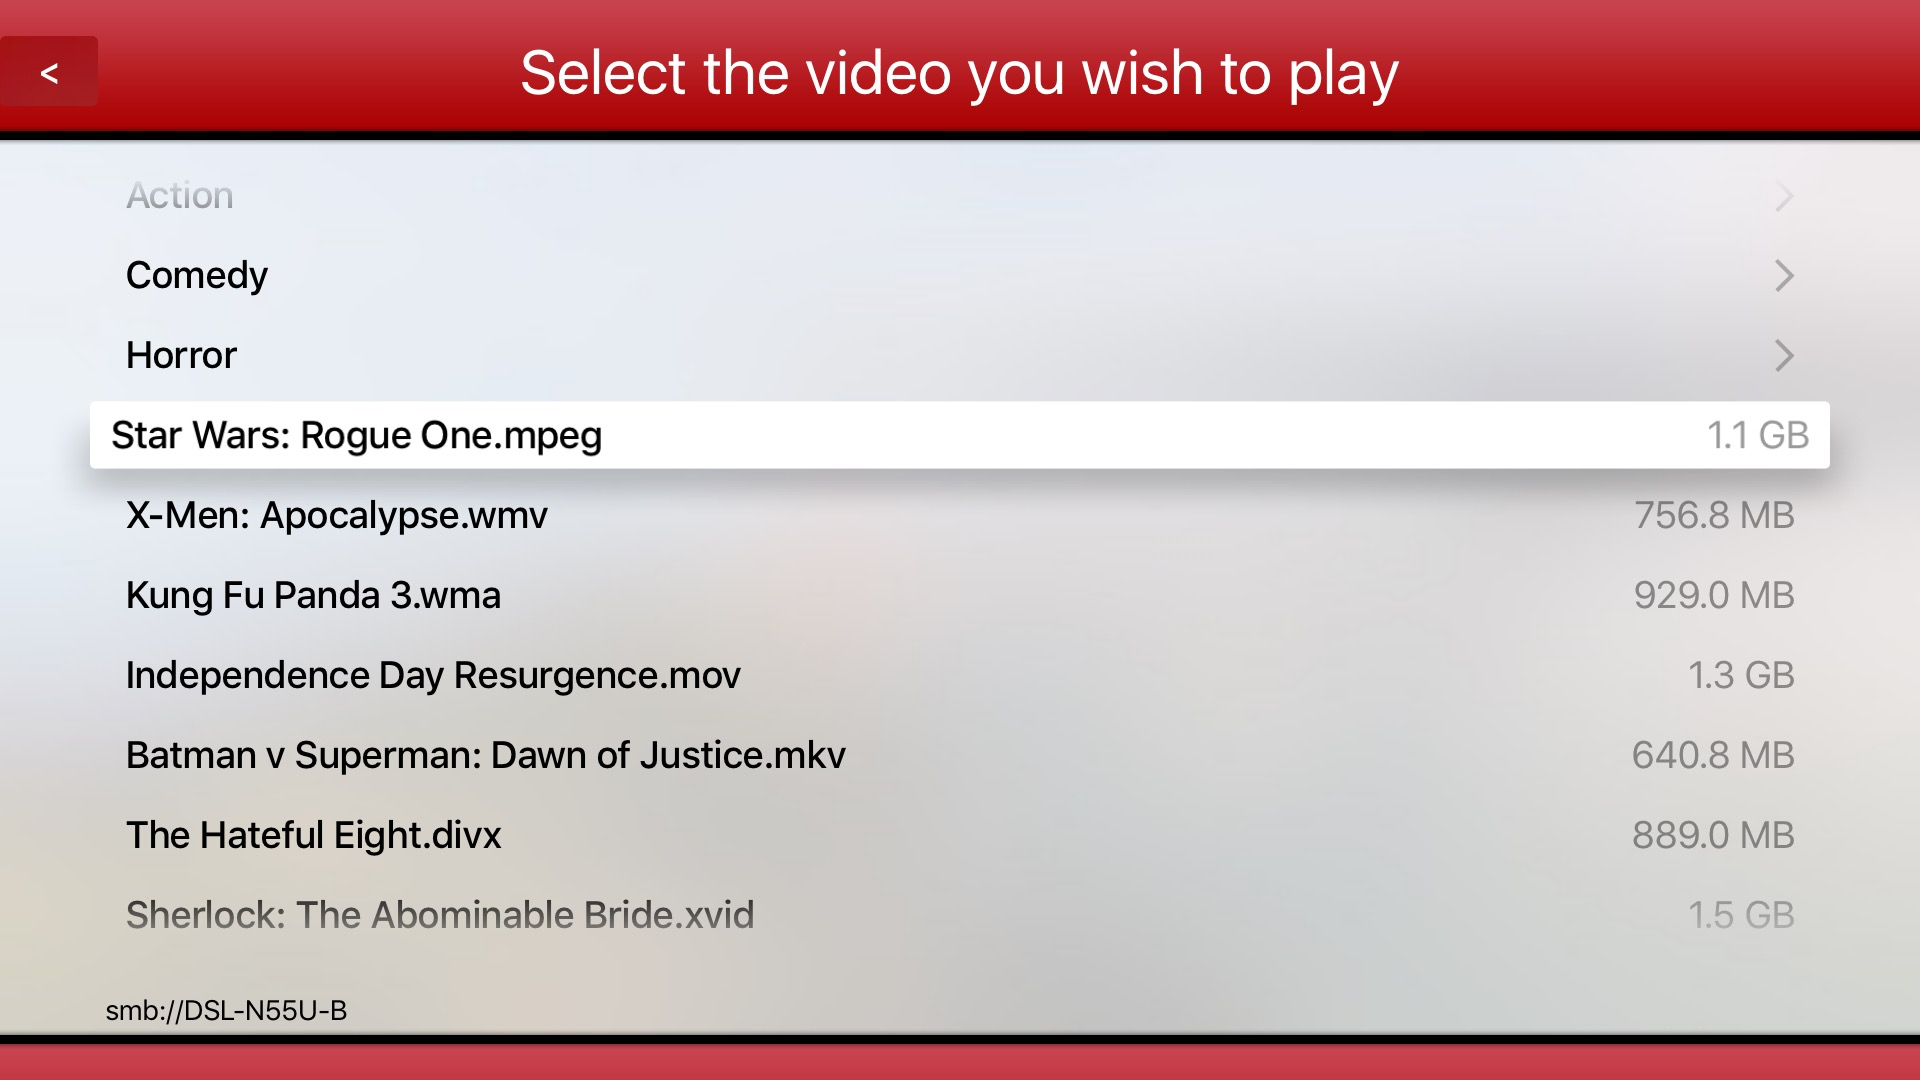 Video Player AviFAST for Most Movies Formats from NAS Media